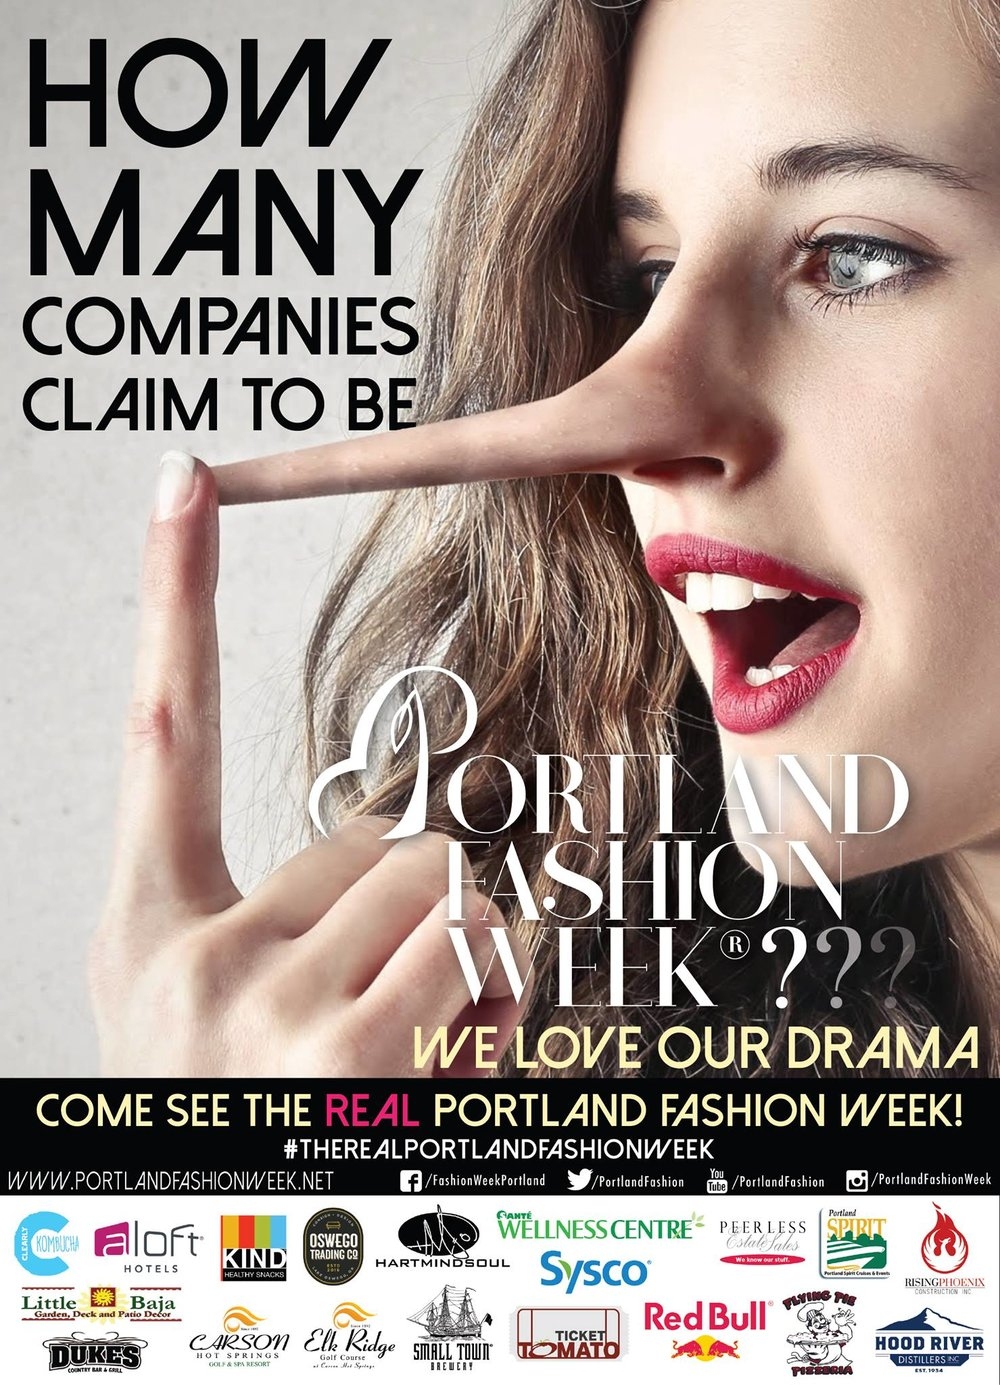 If the company doesn't say Portland Fashion Week..... - Anyone can claim laurels in private or drag TIME Magazine articles around, but if you are not dealing with PFW LLC then you are NOT dealing with #THEREALPORTLANDFASHIONWEEK.Beware as we have imitators in the form of disgraced ejected ex-producers claiming our glory and deliberately muddying waters. We ask anyone who is approached by ''Portland Fashion Week'' under a different organizational guise to please contact us. All communication will be held with the strictest confidentiality.PFW LLC Portland Fashion Week-Active since 2002.